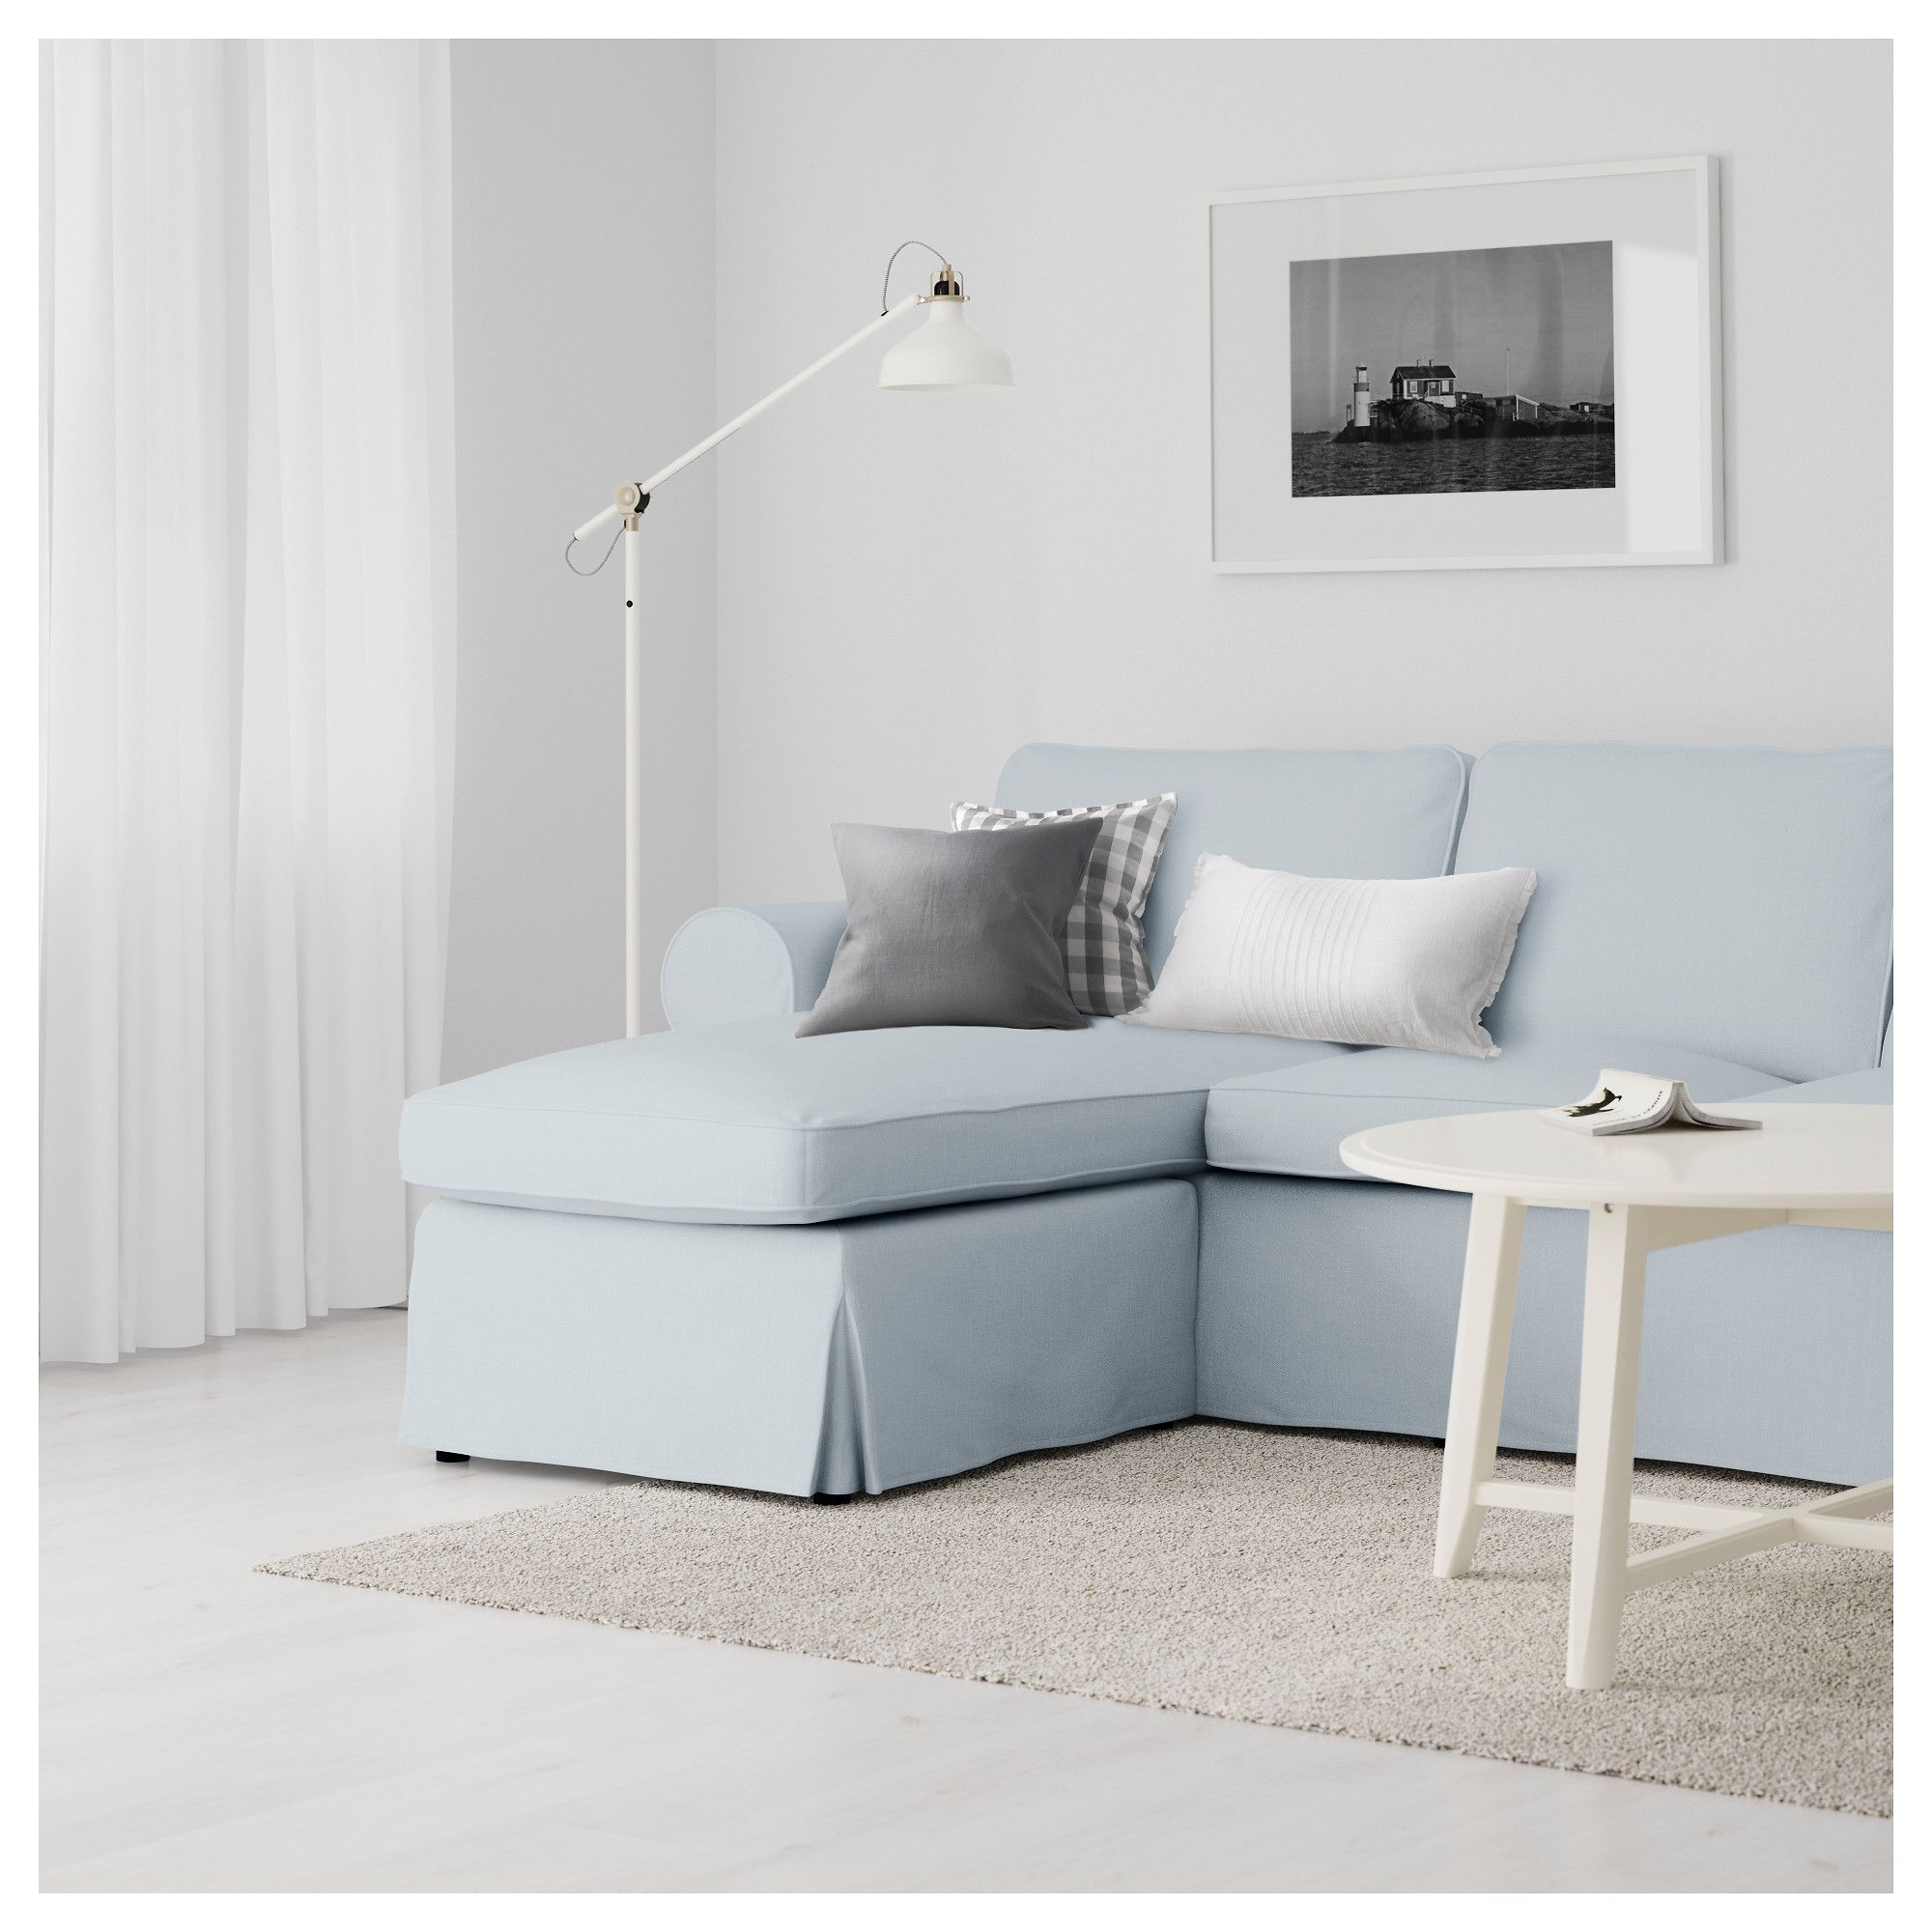 Ektorp Sofa From Ikea Ektorp Sofa With Chaise Nordvalla Light Blue Ikea For The